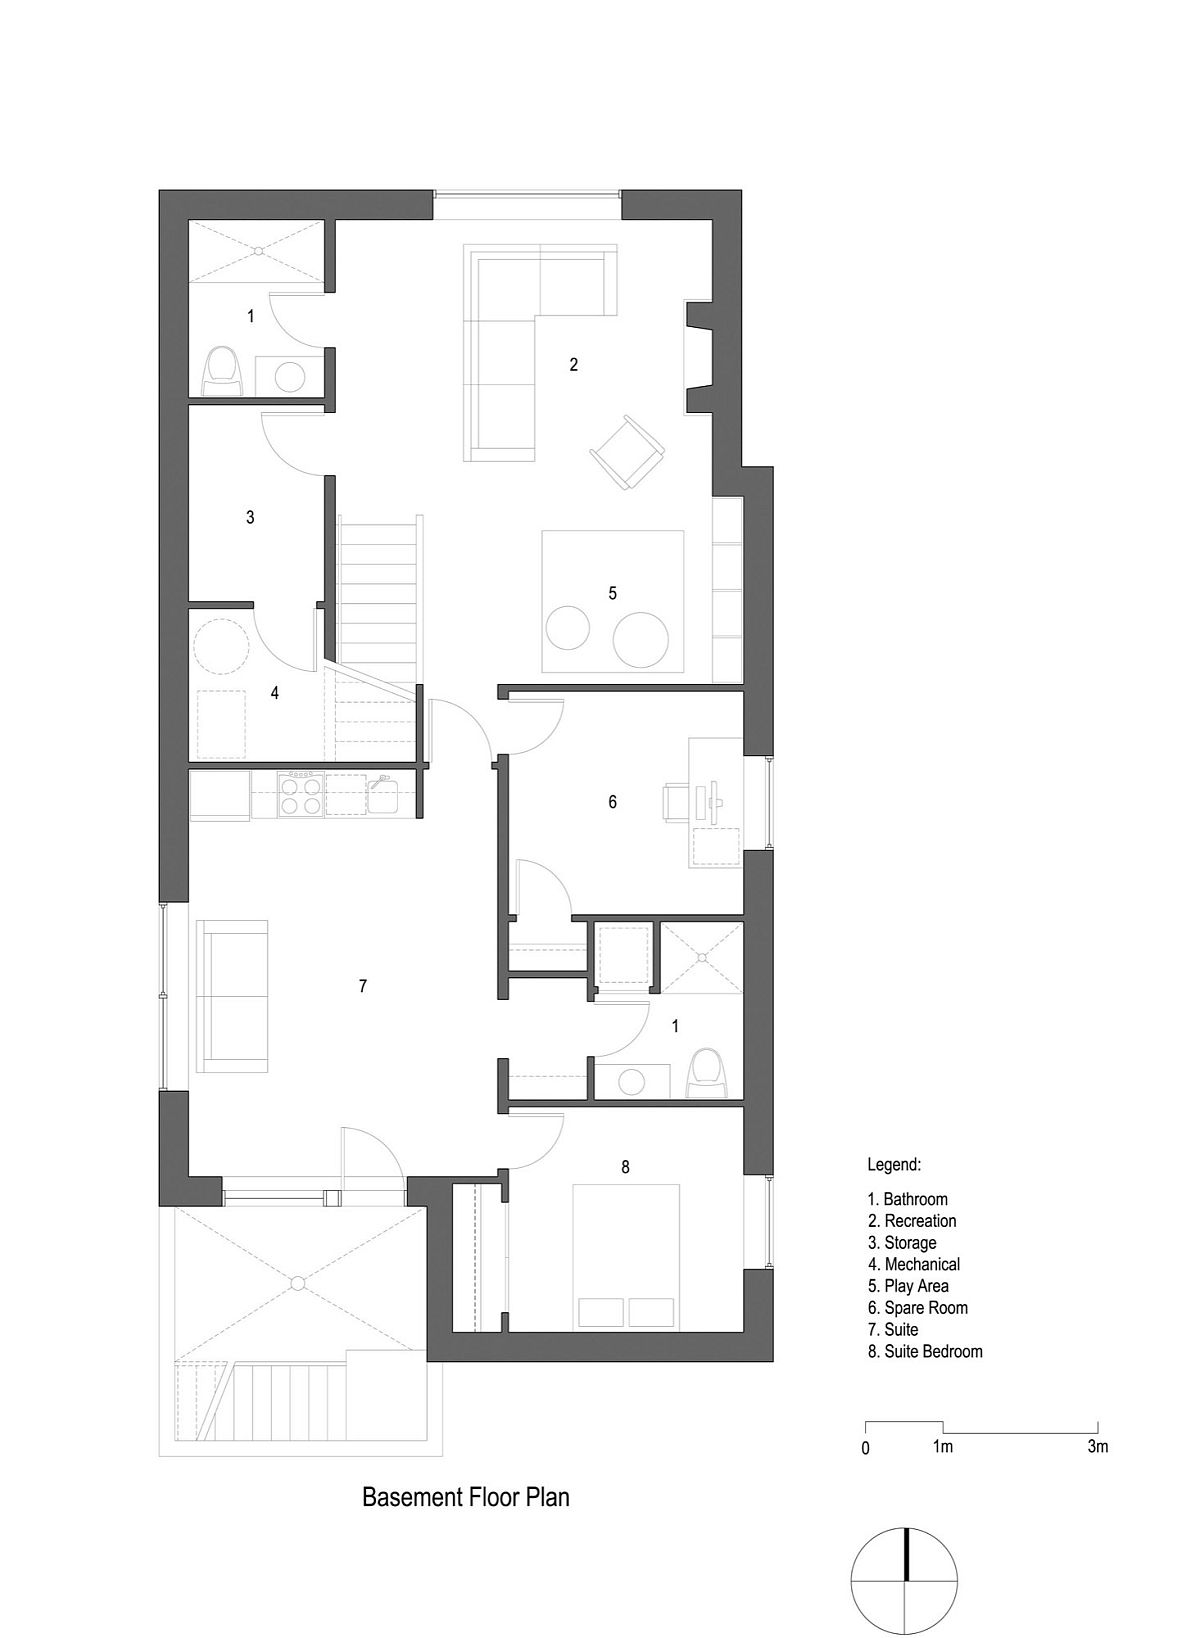 Basement floor plan of the Pink House